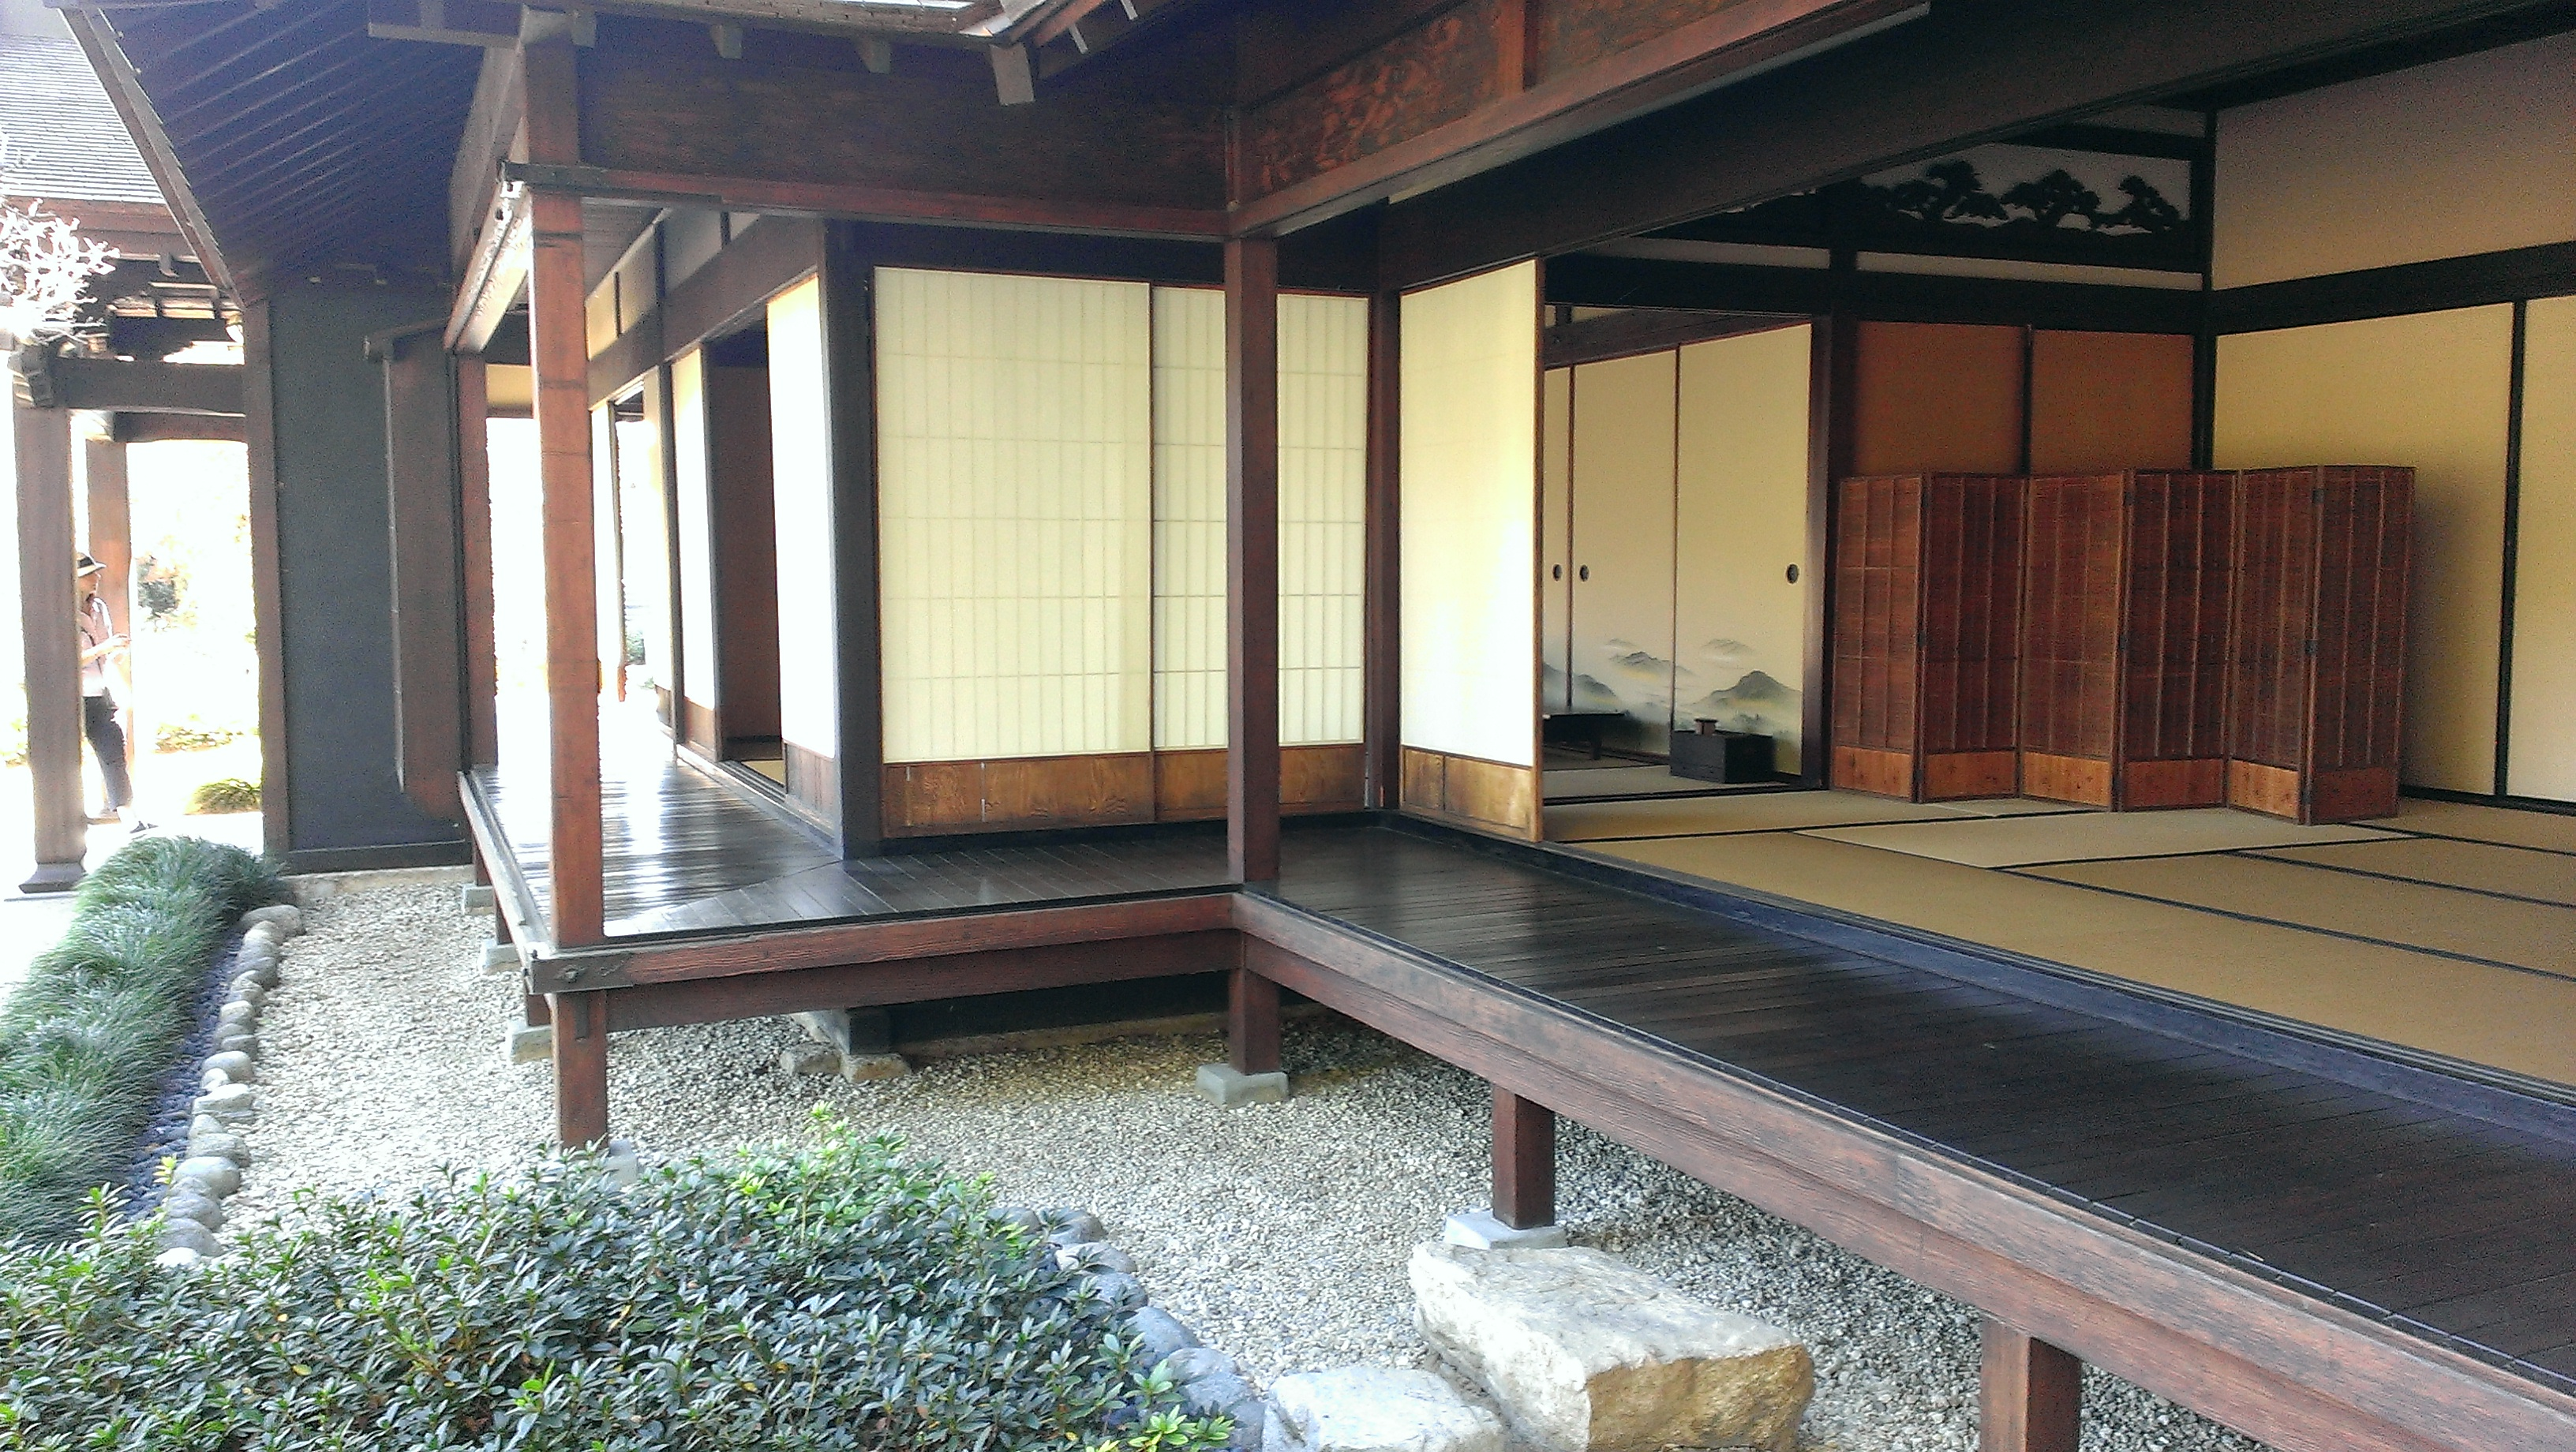 File:Alternate Detail Of Traditional Japanese Home At Japanese Garden,  Huntington Library, Art